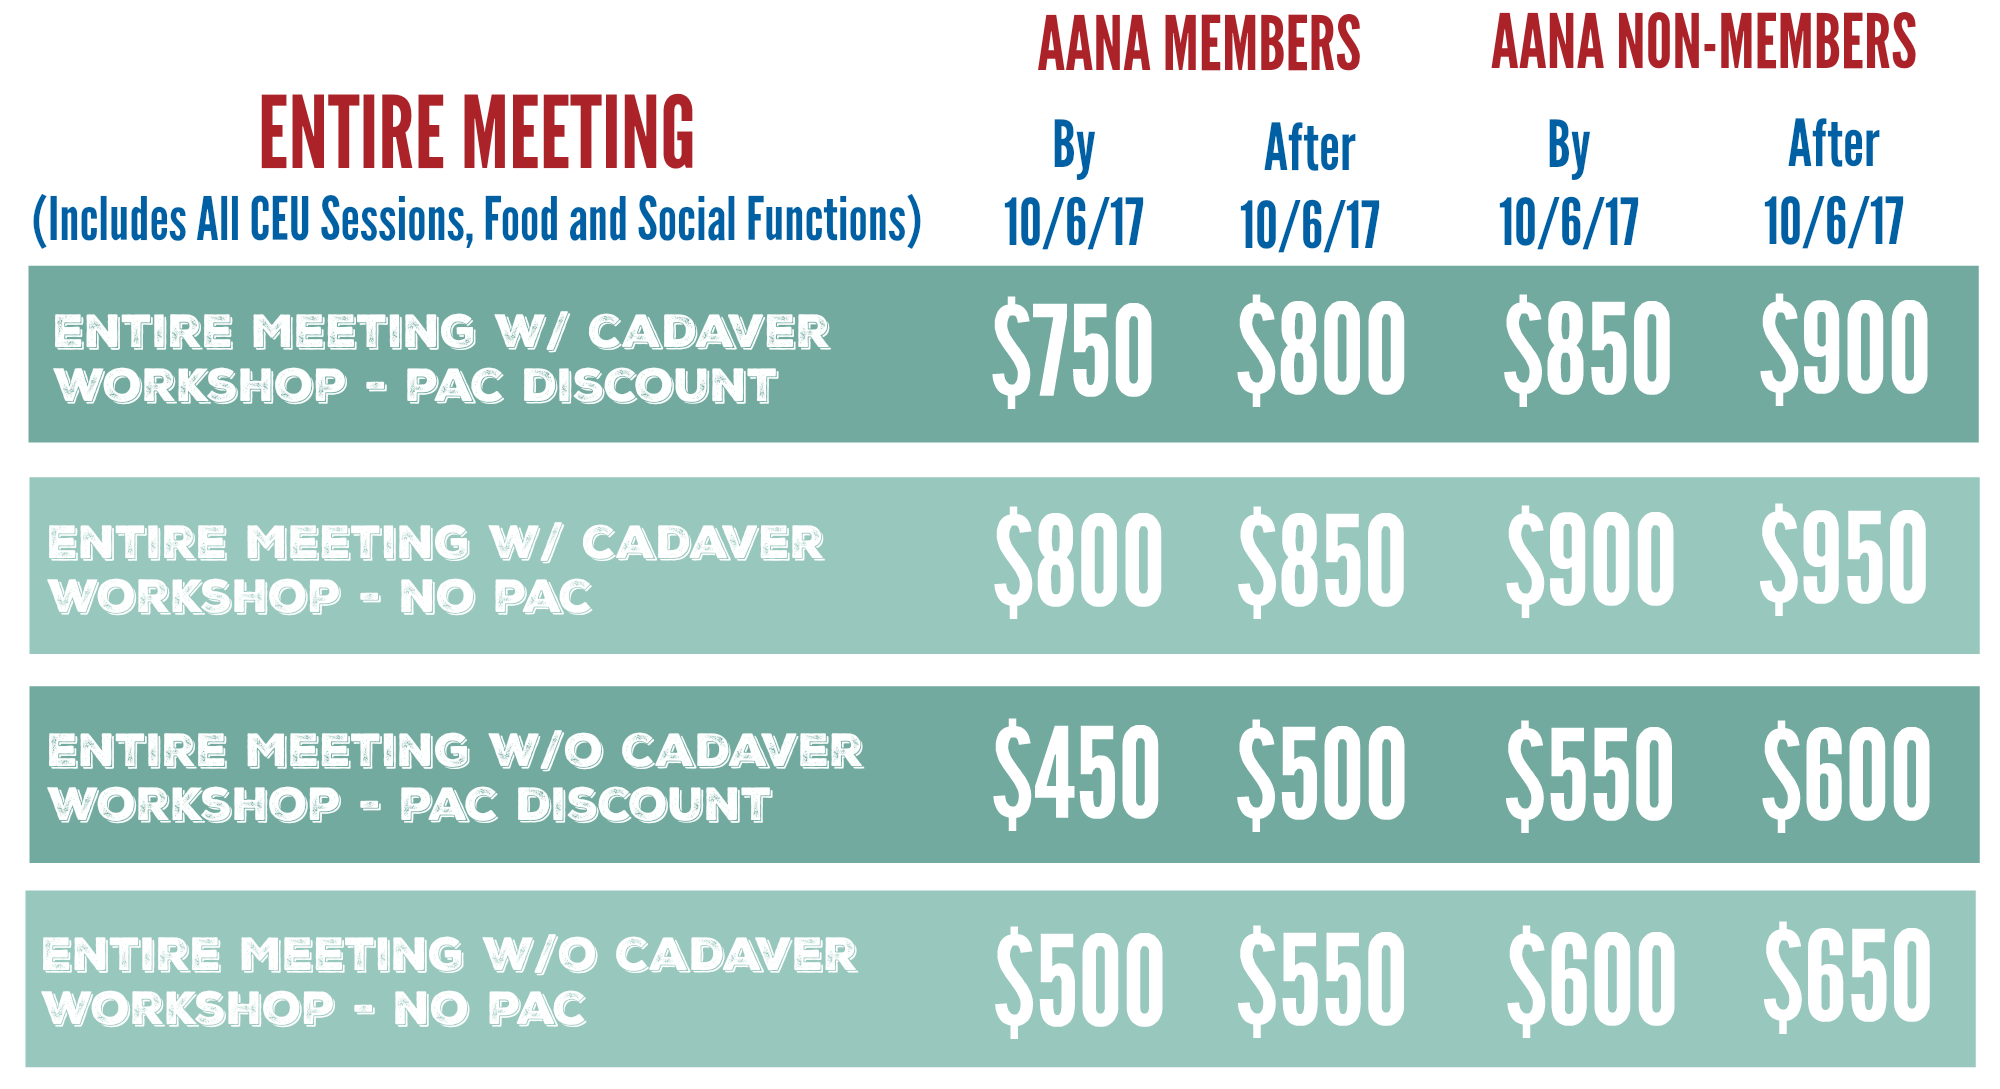 FANA Entire Meeting Annual Rates Updated